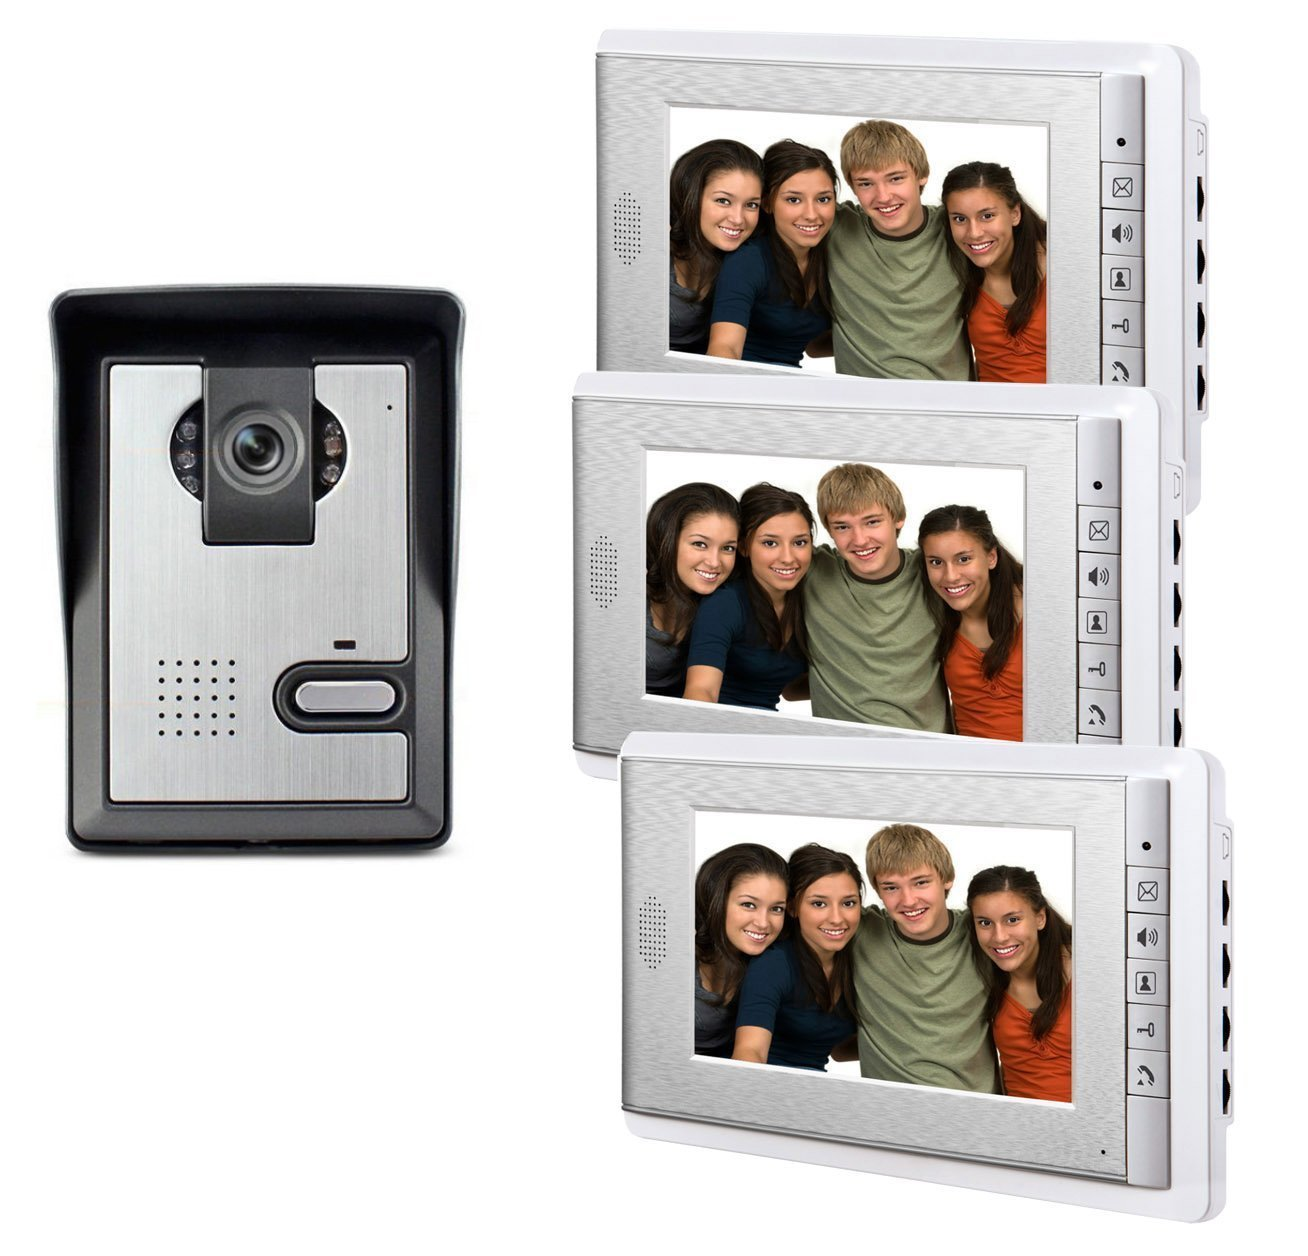 AMOCAM 7'' LCD Monitor Wired Video Intercom Doorbell Home Security Systems, 1- Camera 3- monitor Video Door Phone Bell Kits, Support Monitoring, Unlock, Dual-way Door Intercom, IR Night Vision